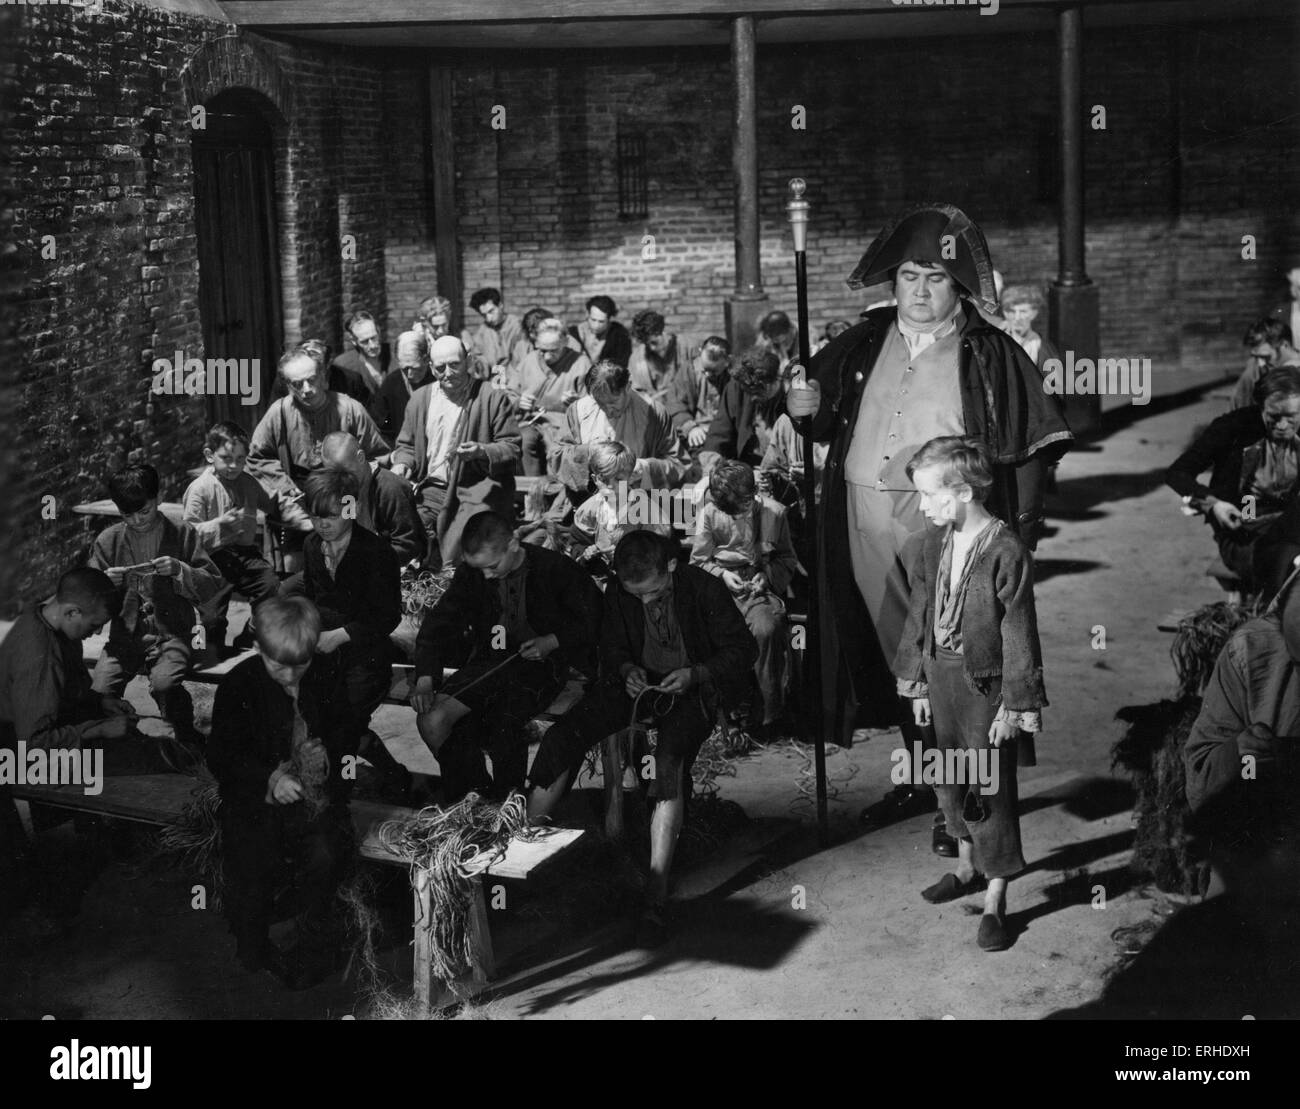 Oliver Twist film still from 1948 Rank Film production of Charles Dickens. British novelist, 7 February 1812 - 9 - Stock Image